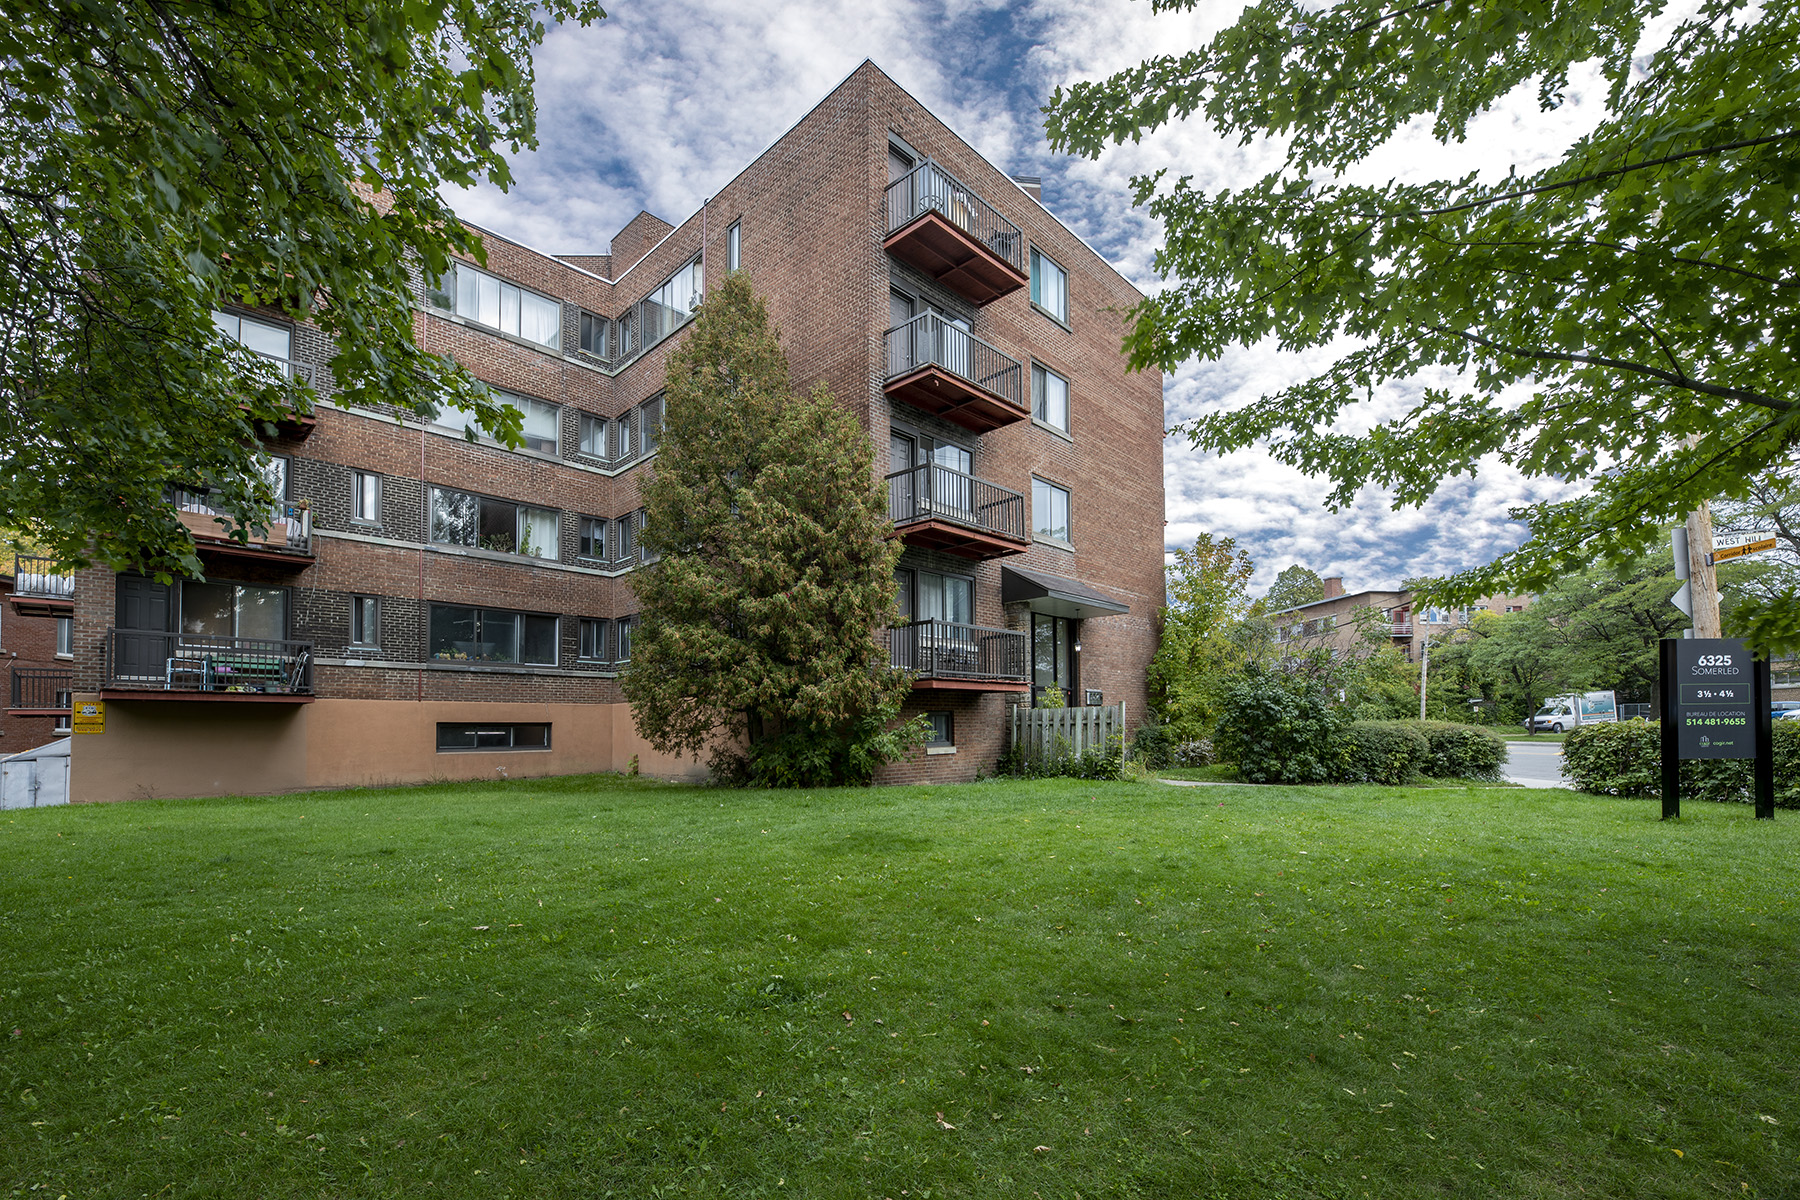 1 bedroom Apartments for rent in Notre-Dame-de-Grace at 6325 Somerled - Photo 02 - RentQuebecApartments – L401538